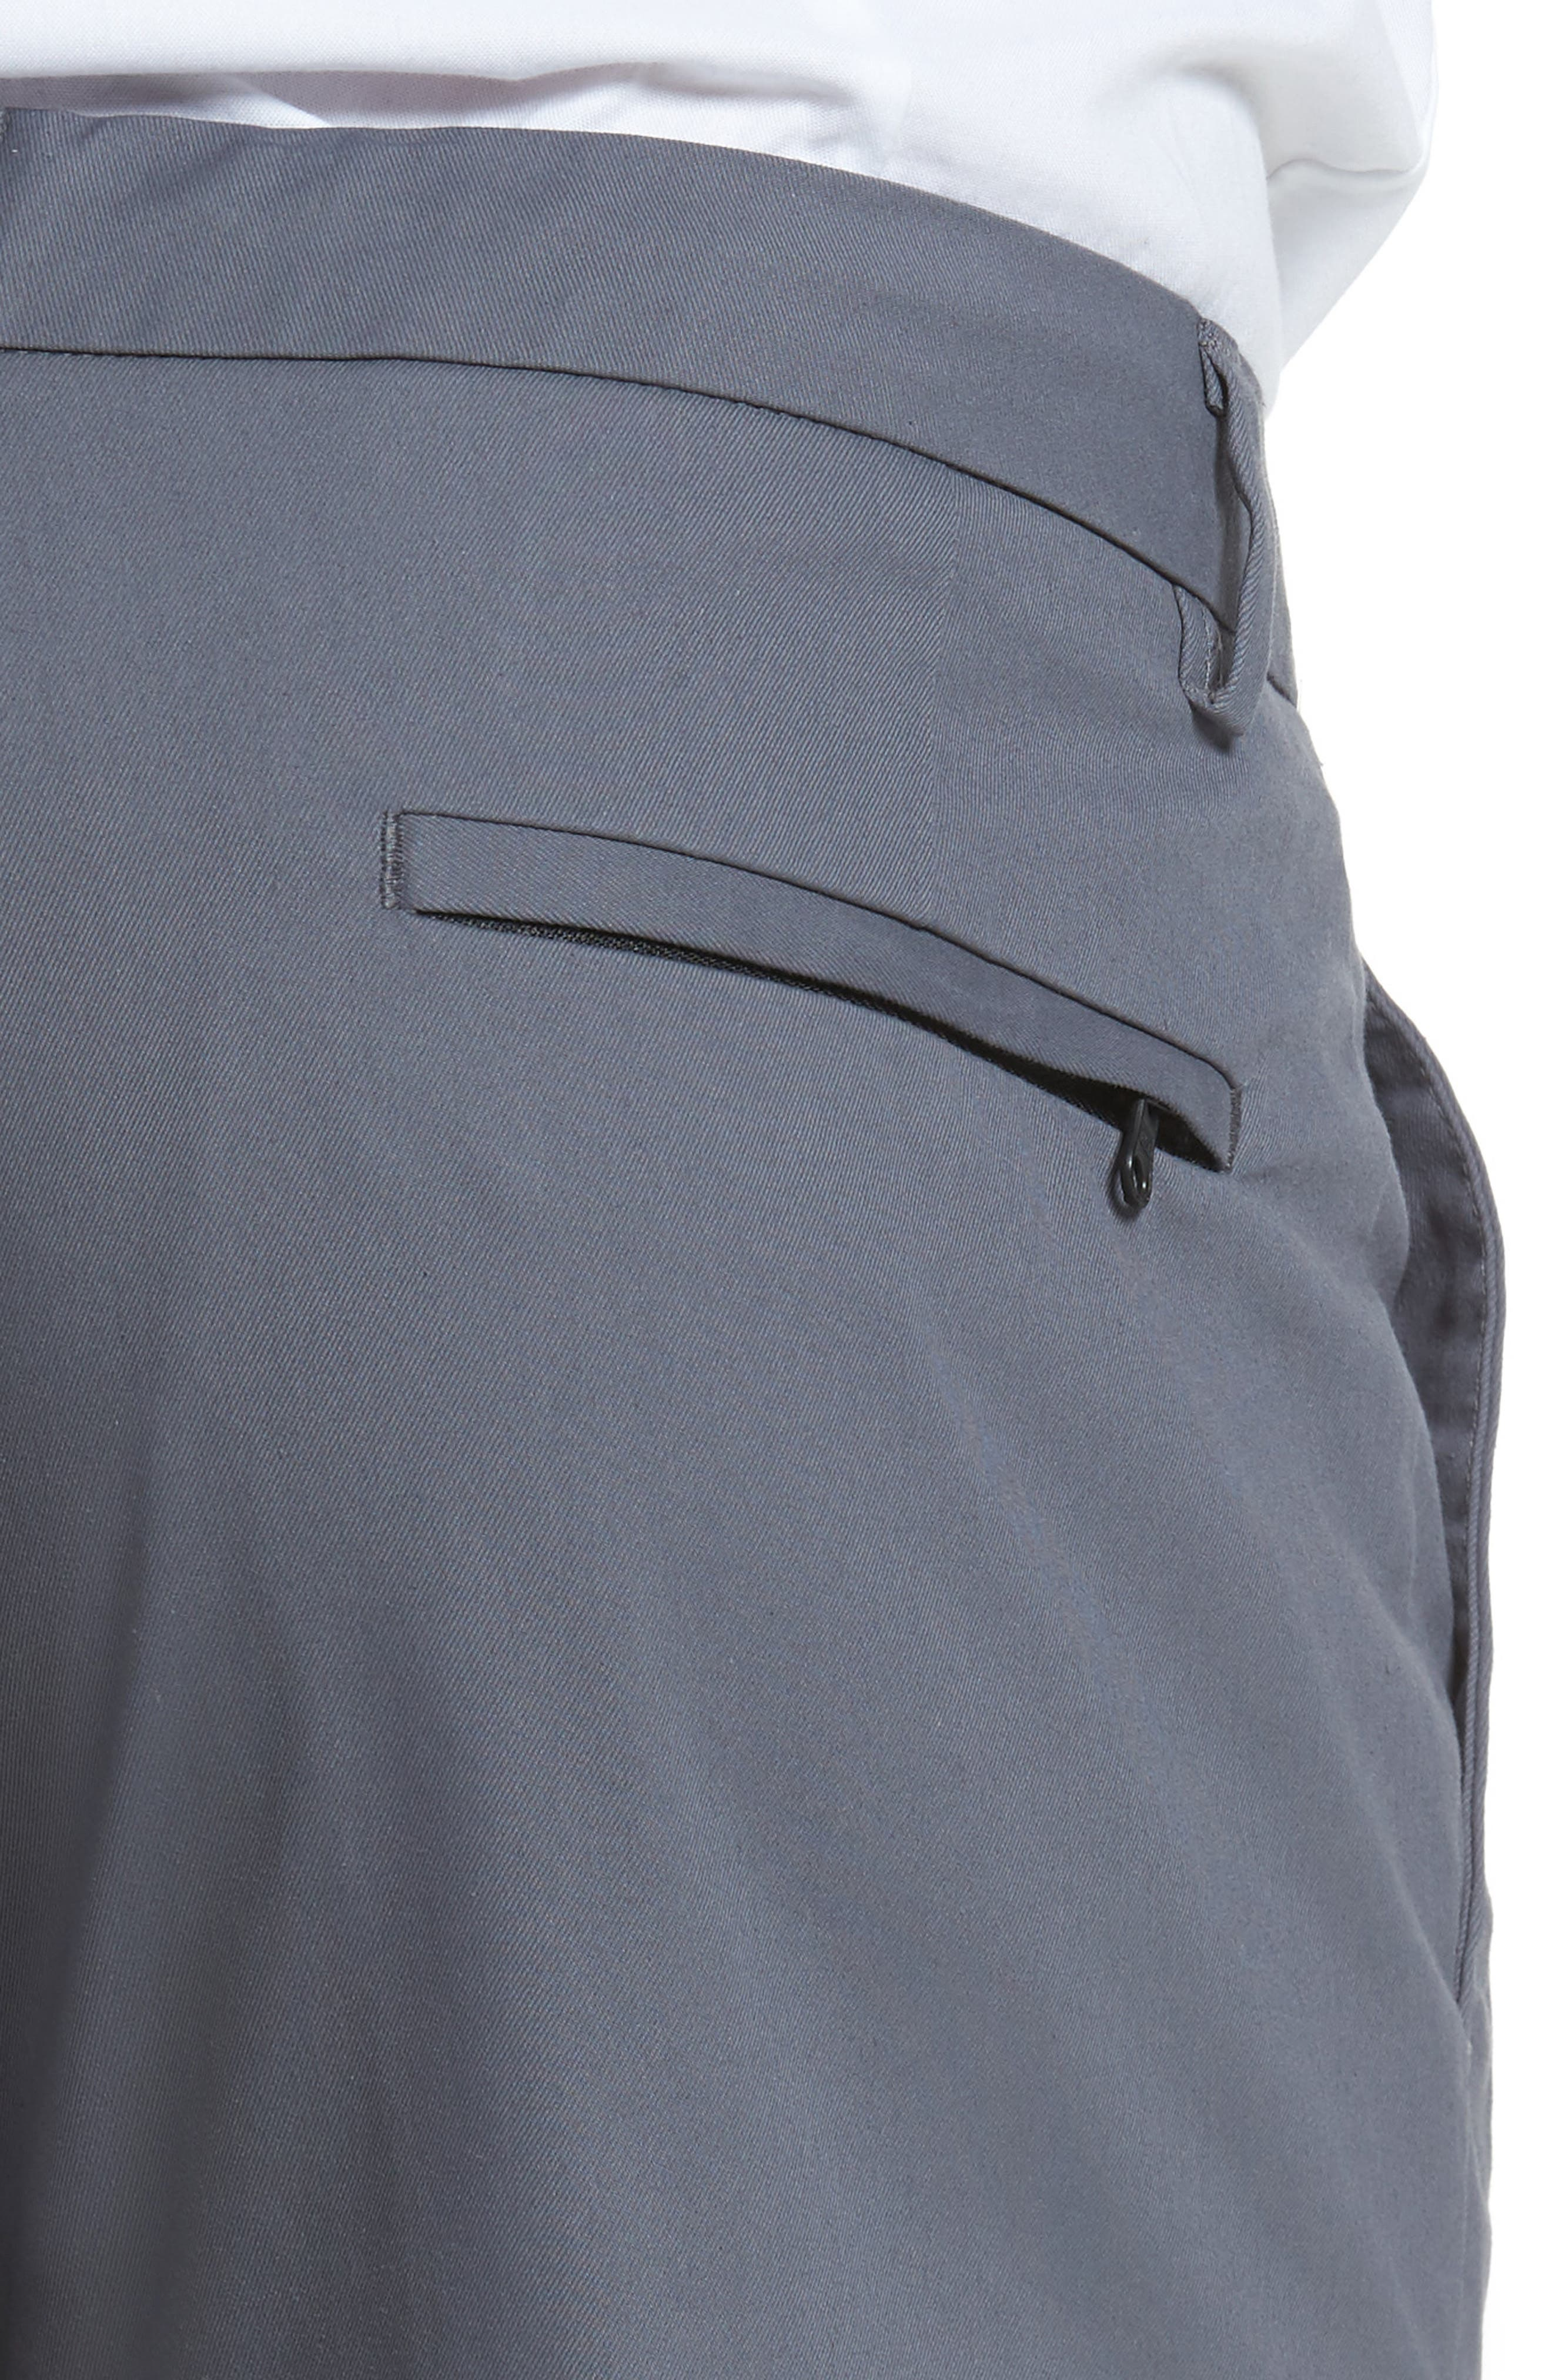 Slim Fit Tech Chinos,                             Alternate thumbnail 4, color,                             THUNDERCLOUD